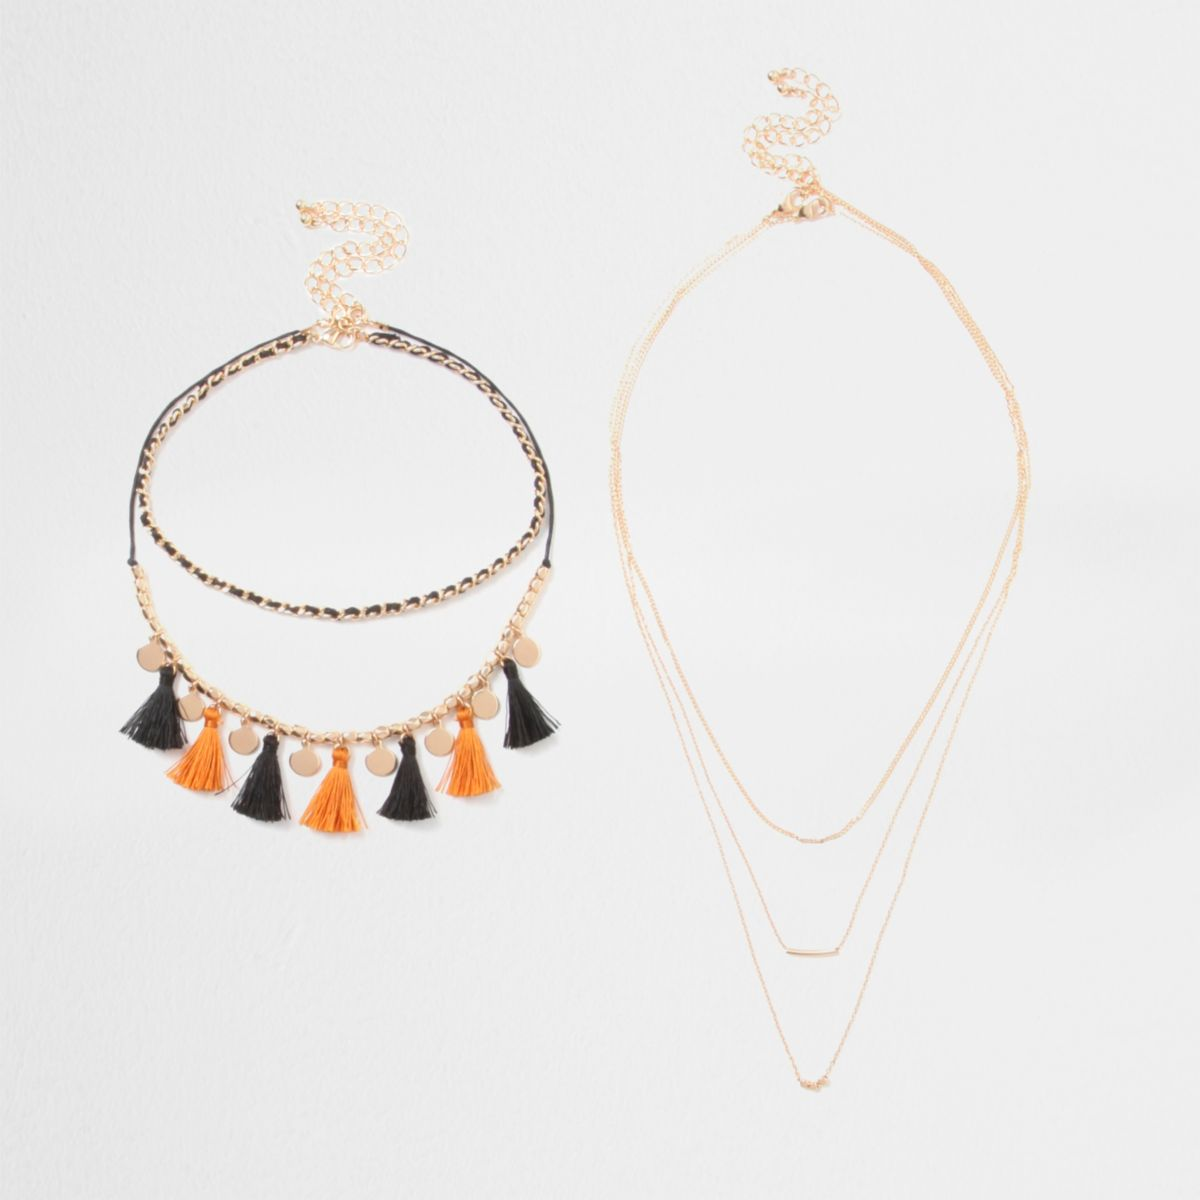 Orange tassel chain draper choker set